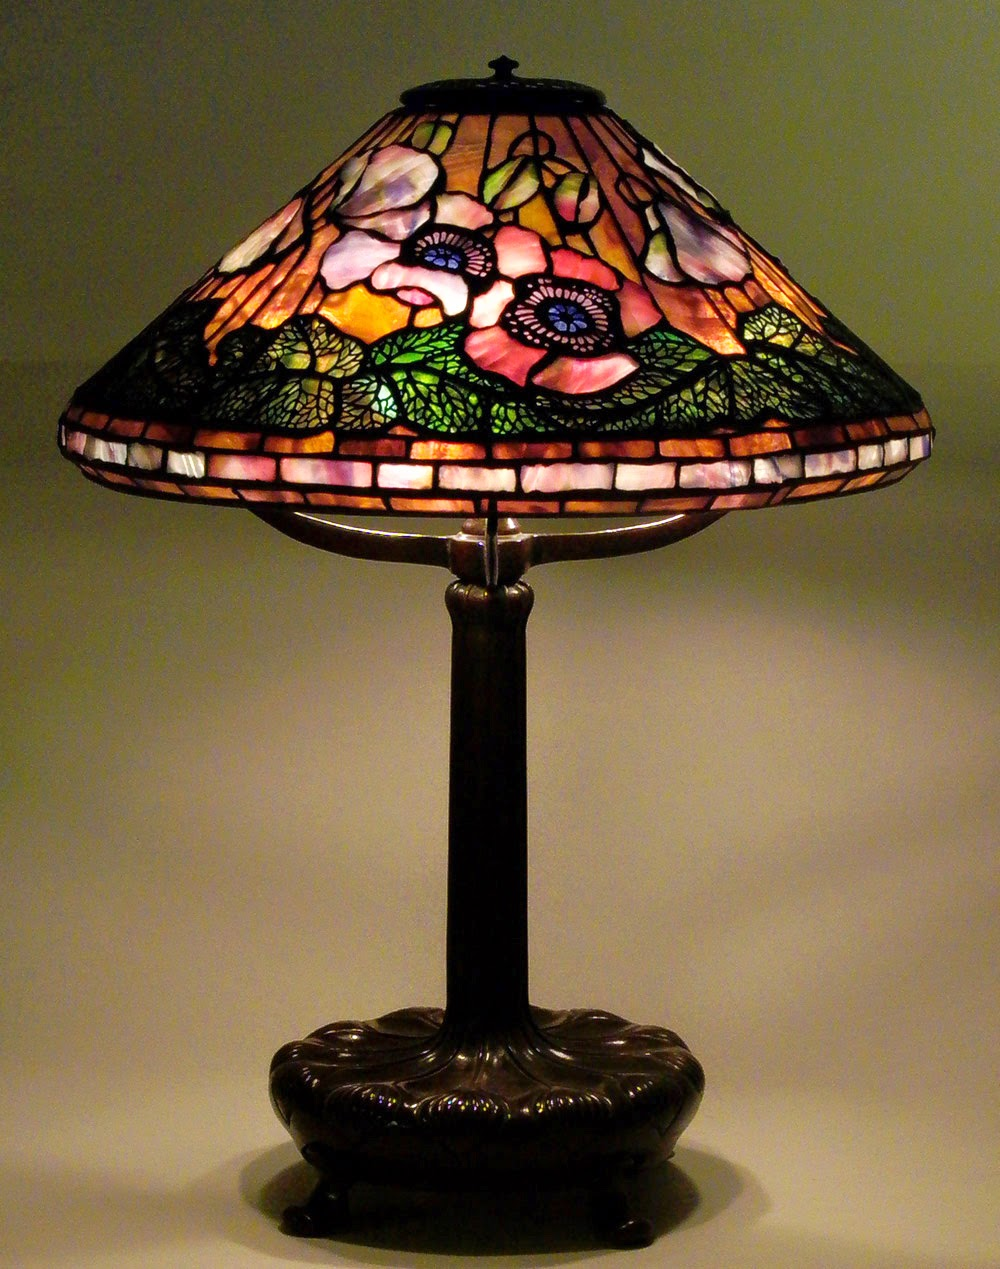 ... Collection Private Collection Snowball Lamp Dragonfly Lamp Forward